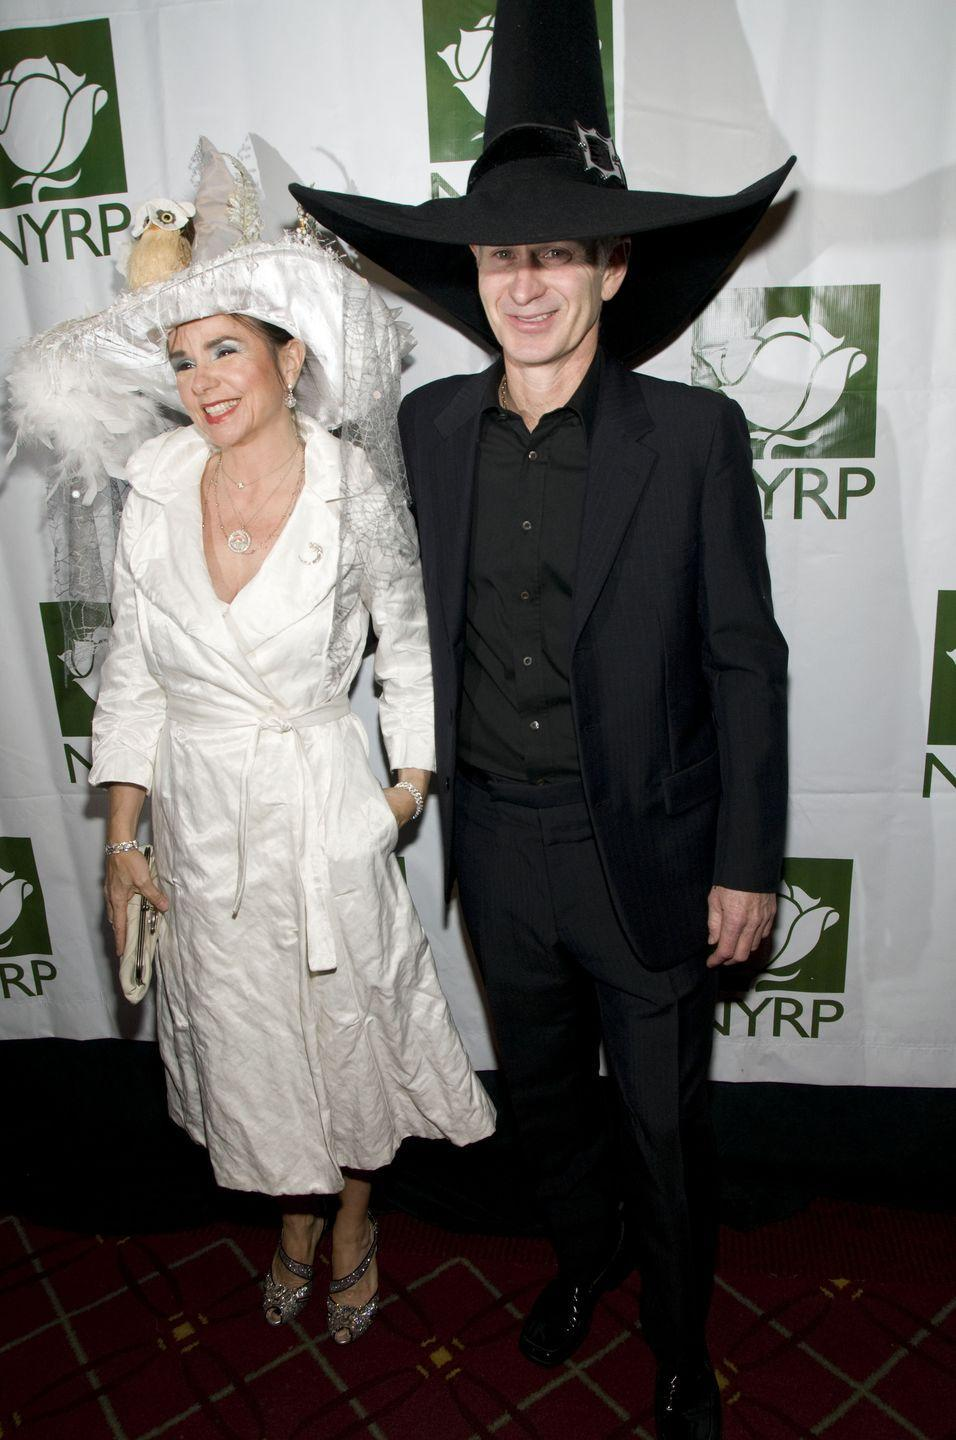 <p>Did you know Bette Midler throws a Halloween benefit called Hulaween (with the New York Restoration Project)? In 2008, Patty Smyth and husband John McEnroe arrived dressed as witches—her a good witch, him a bad one. (Interesting...)</p>